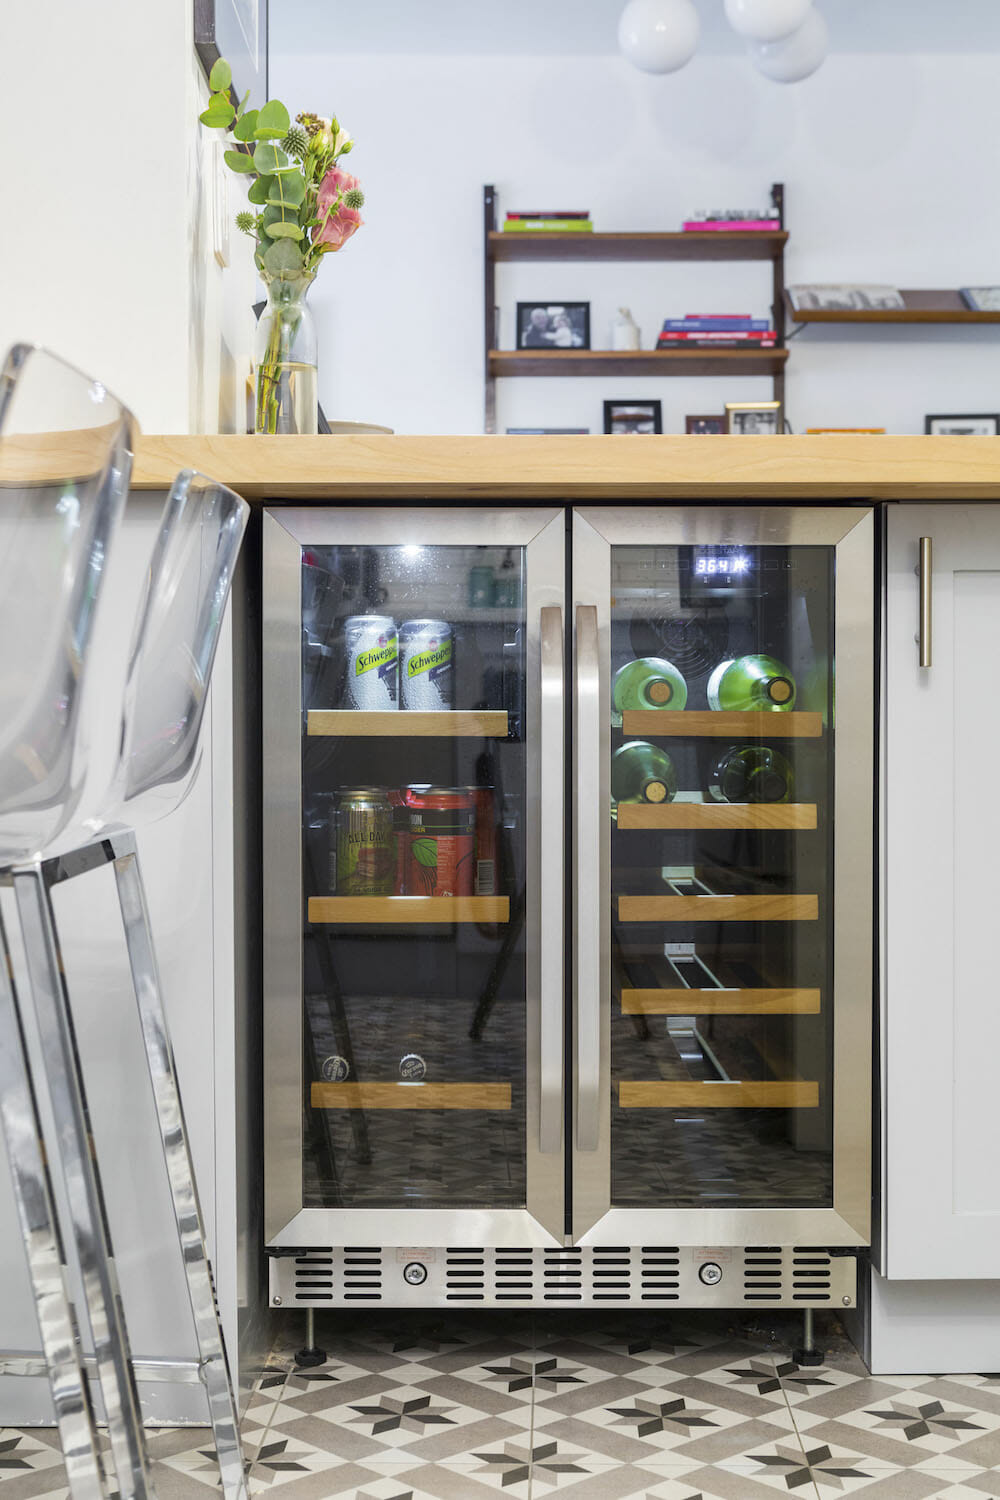 Image of a wine fridge with double-sided doors